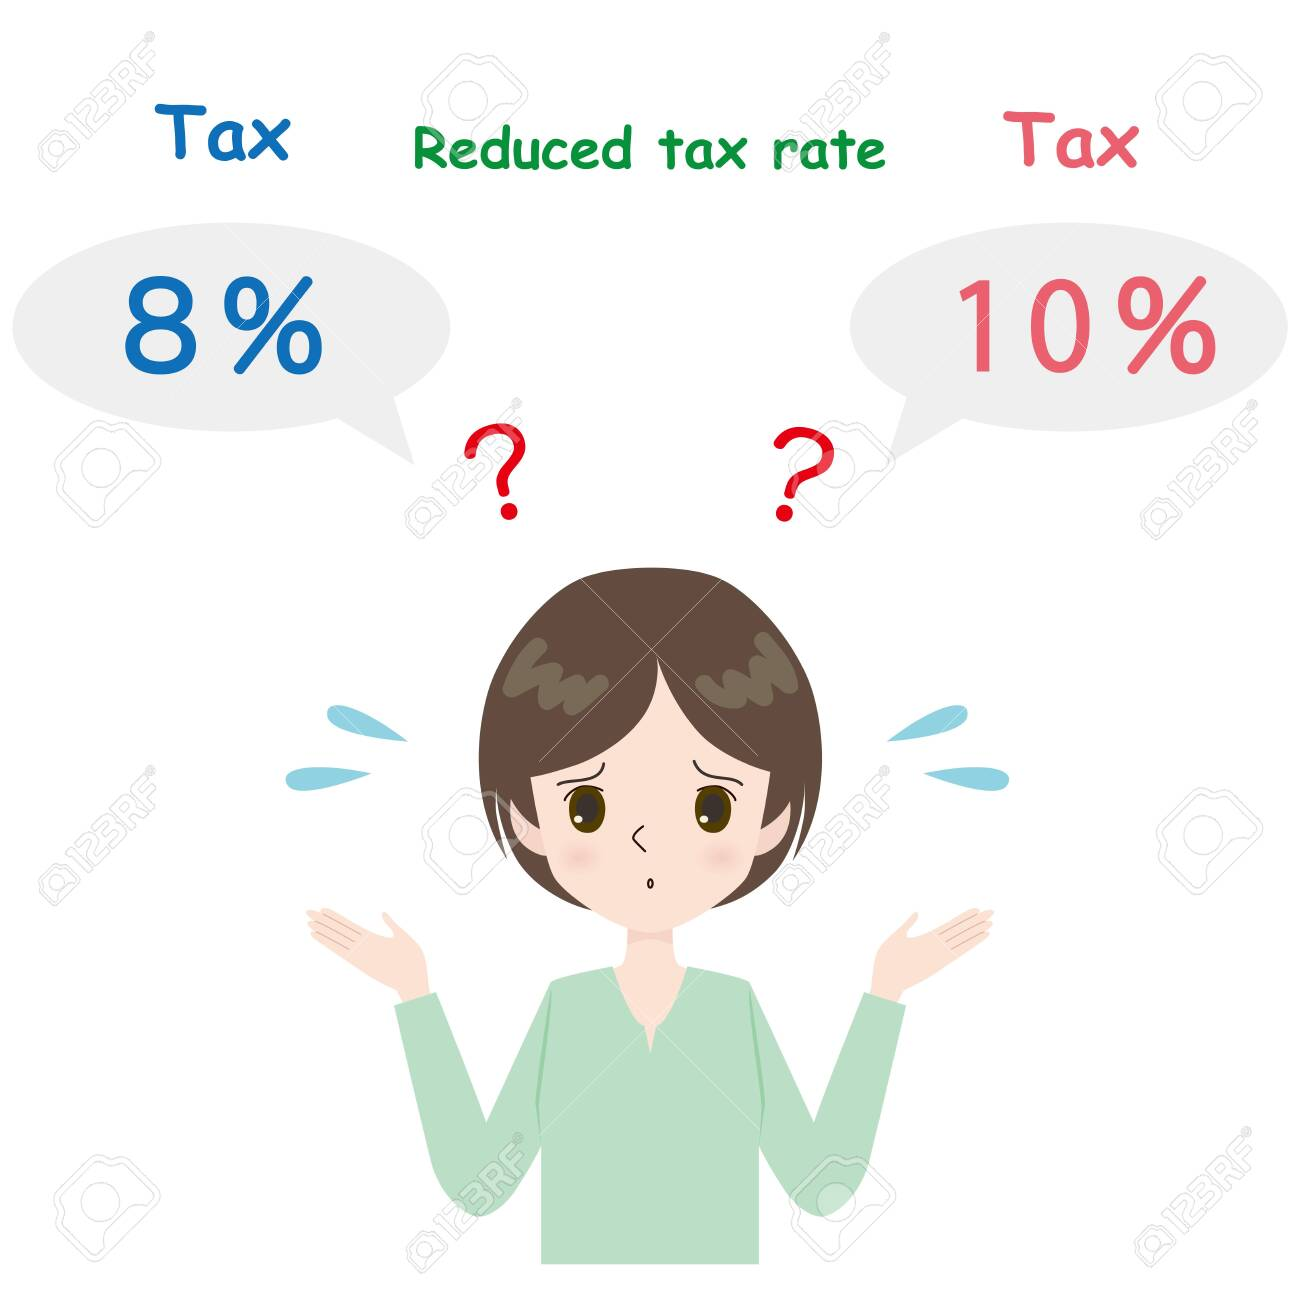 Illustration of a woman bewildered by reduced tax rate. - 129770169